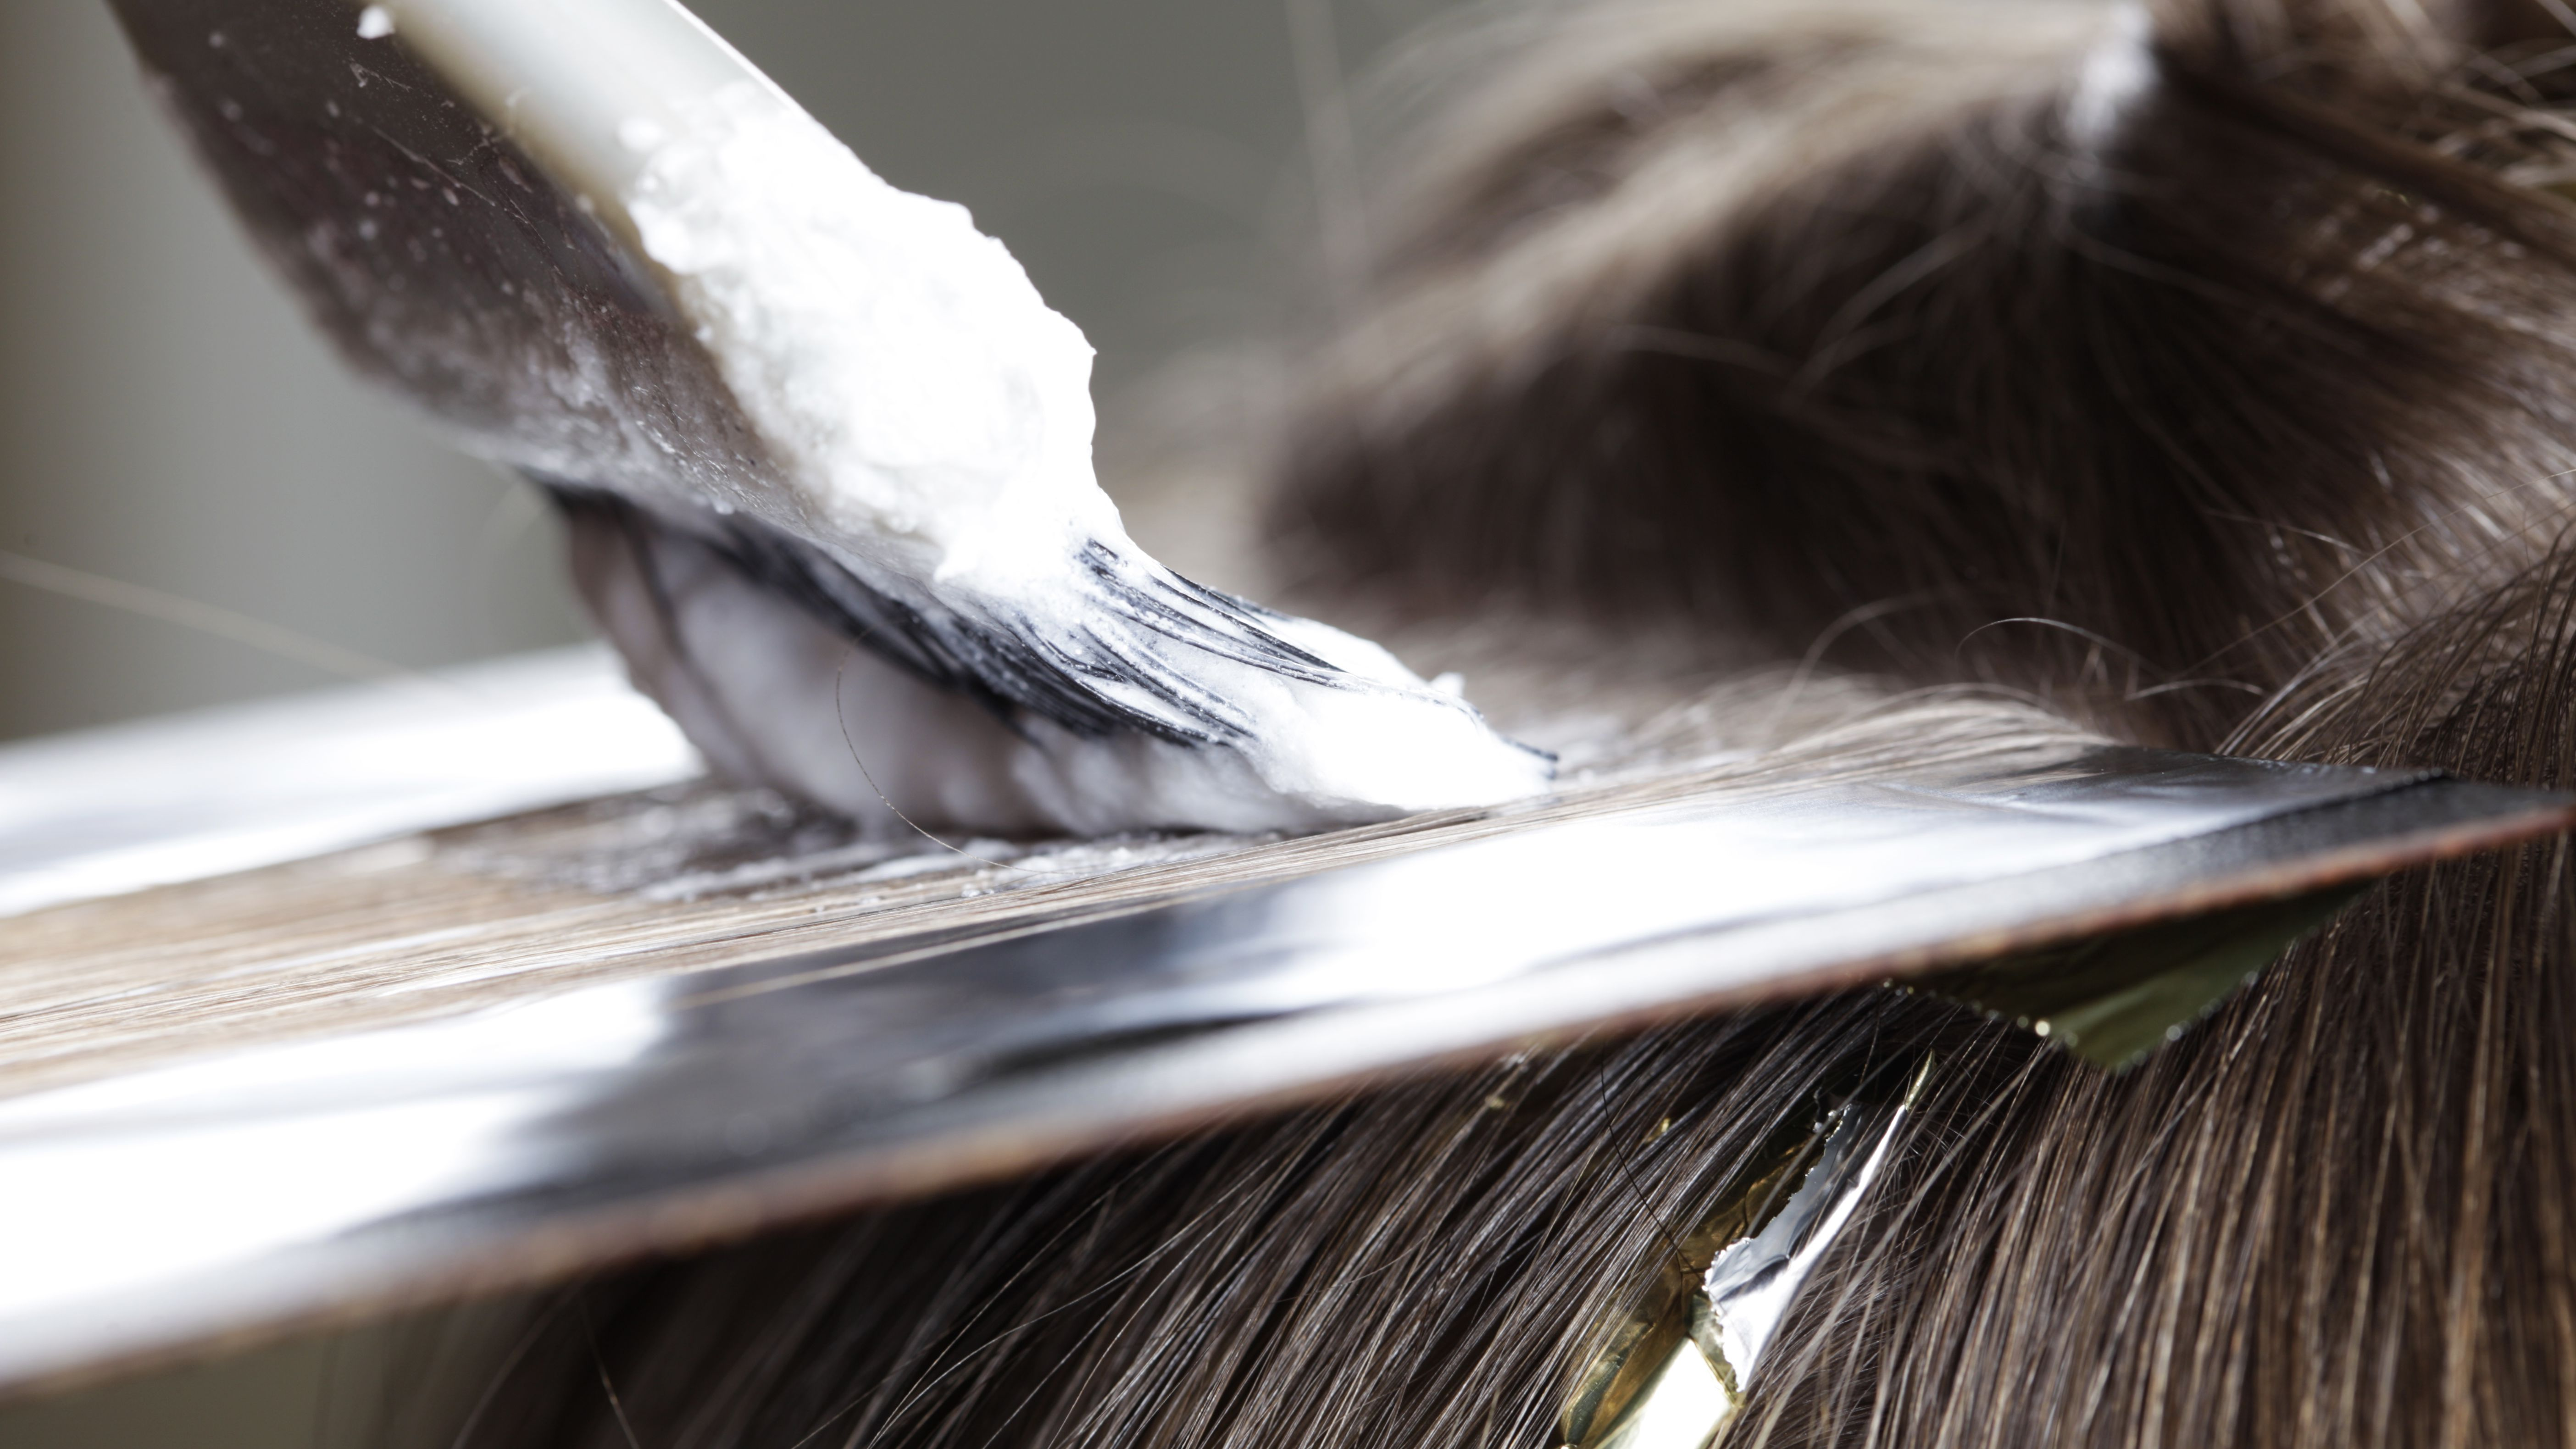 How to Use Hair Dye to Color Pubic Hair